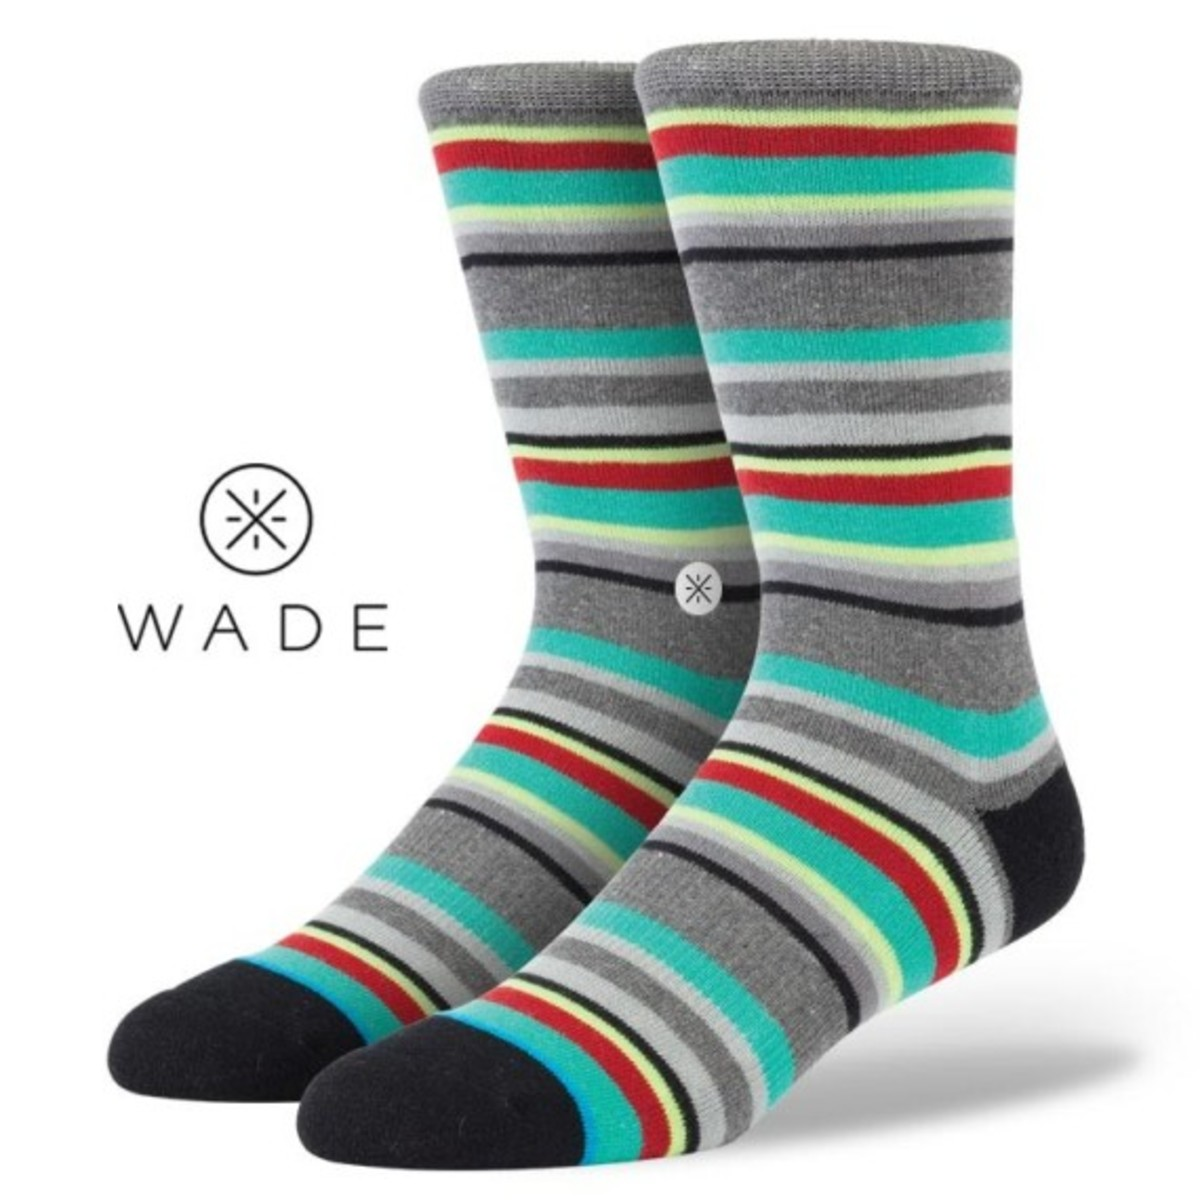 Dwyane Wade x Stance Socks – Summer 2014 Collection - 9